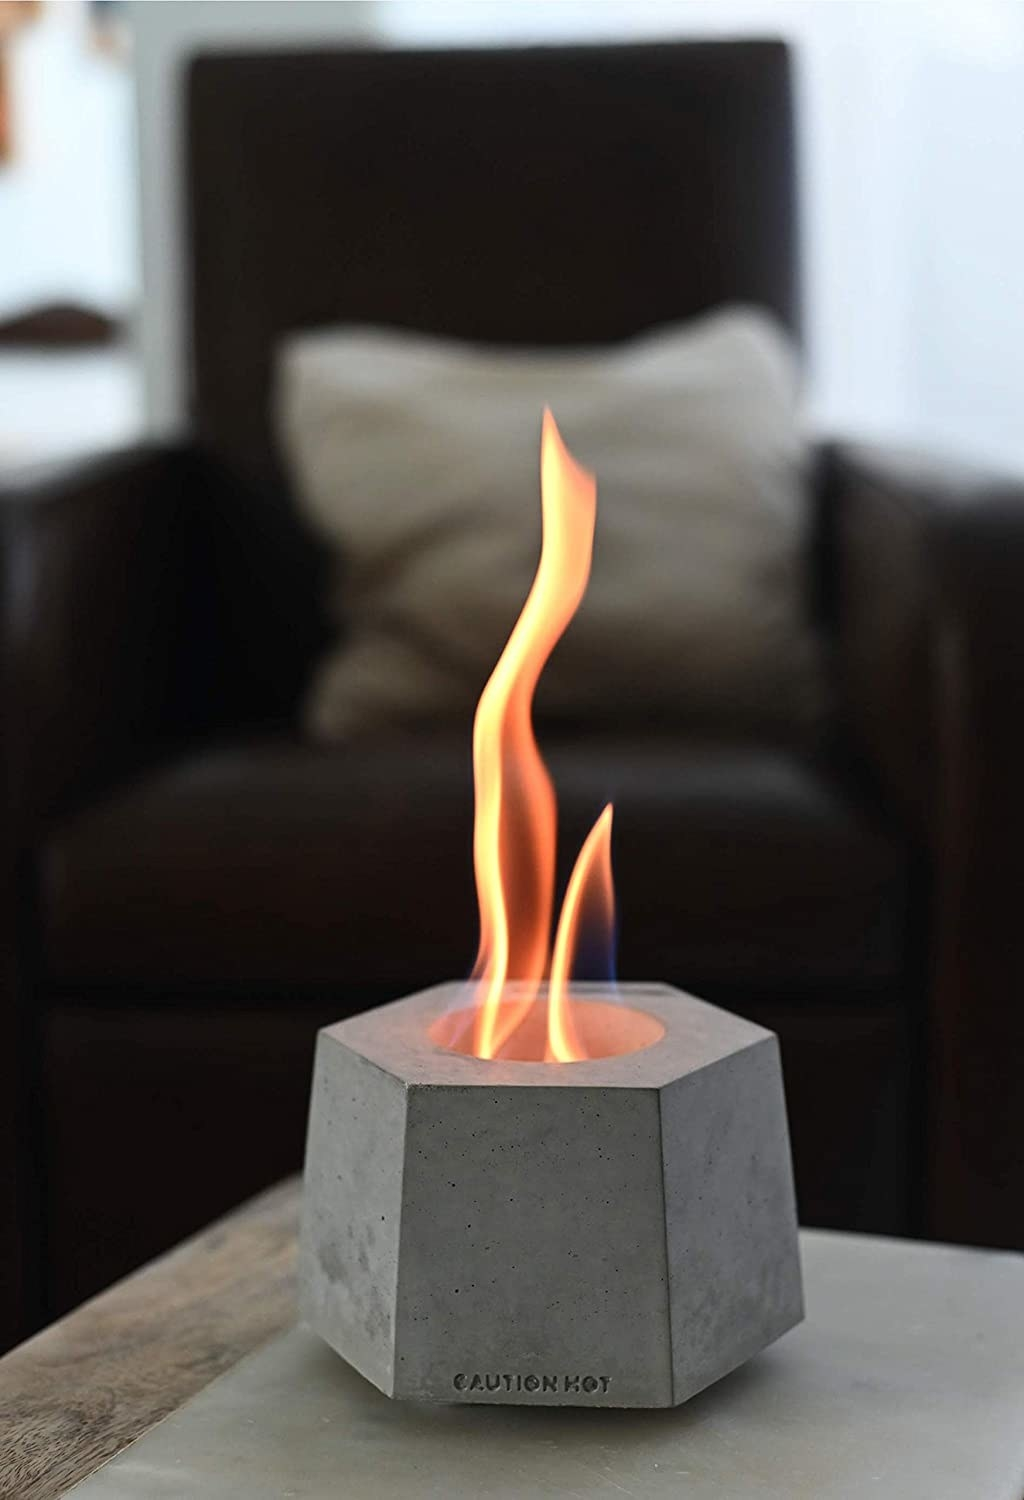 concrete planter-like fireplace on a table